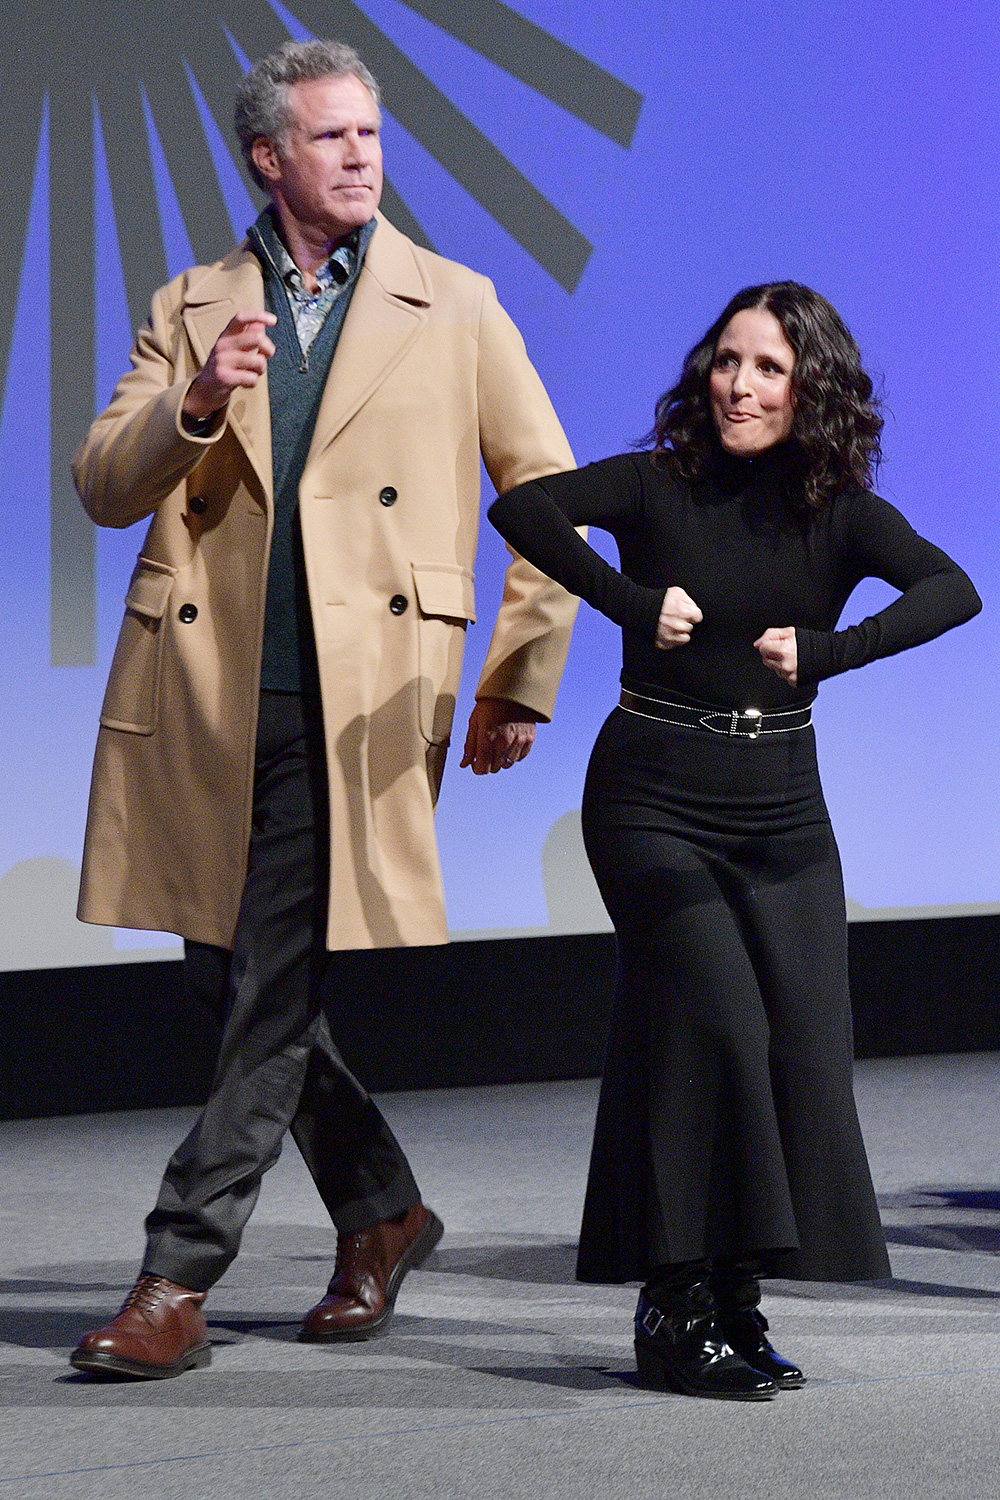 """Will Ferrell (L) and Julia Louis-Dreyfus onstage during the 2020 Sundance Film Festival - """"Downhill"""" Premiere at Eccles Center Theatre on January 26, 2020 in Park City, Utah"""